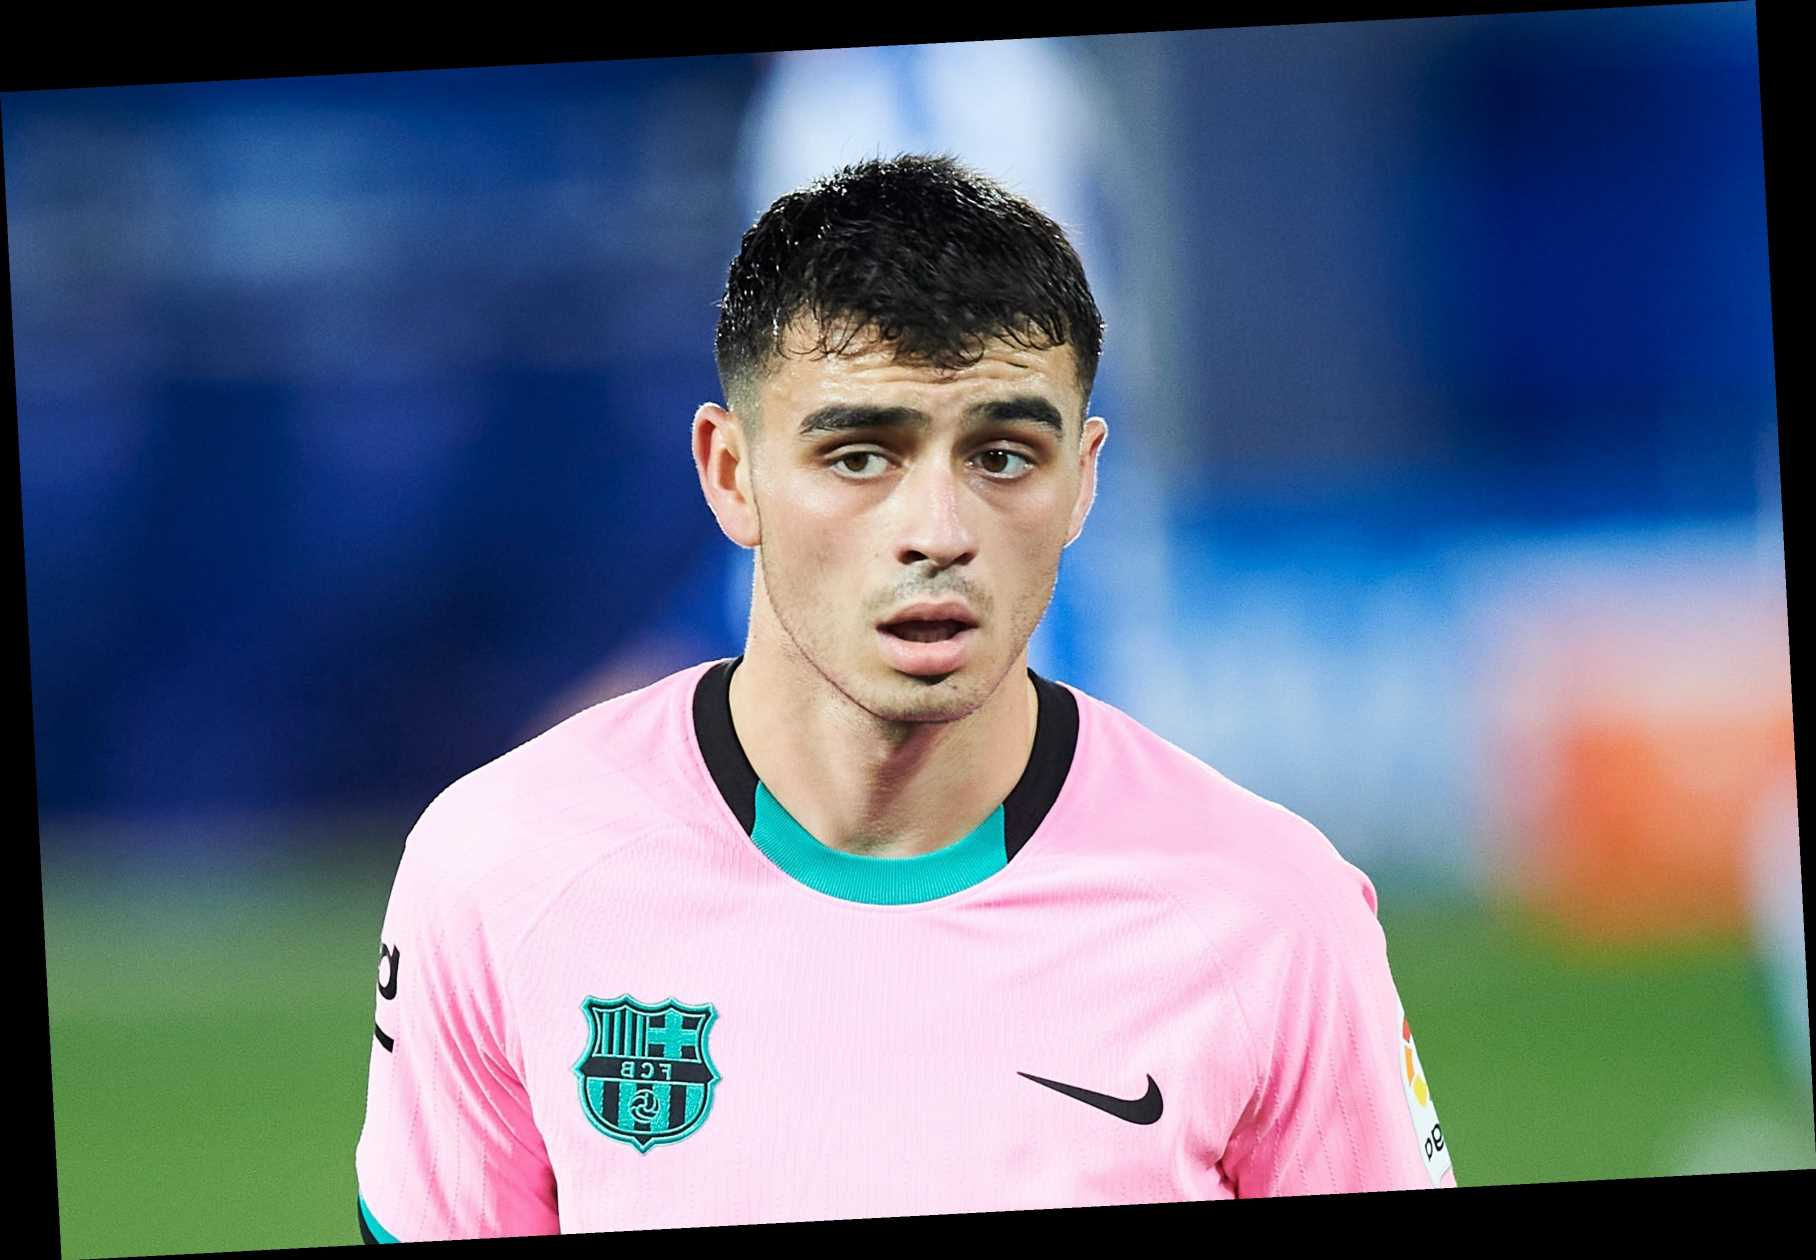 Barcelona slap massive £360m transfer release clause on sensation Pedri, 17, after stunning start to season